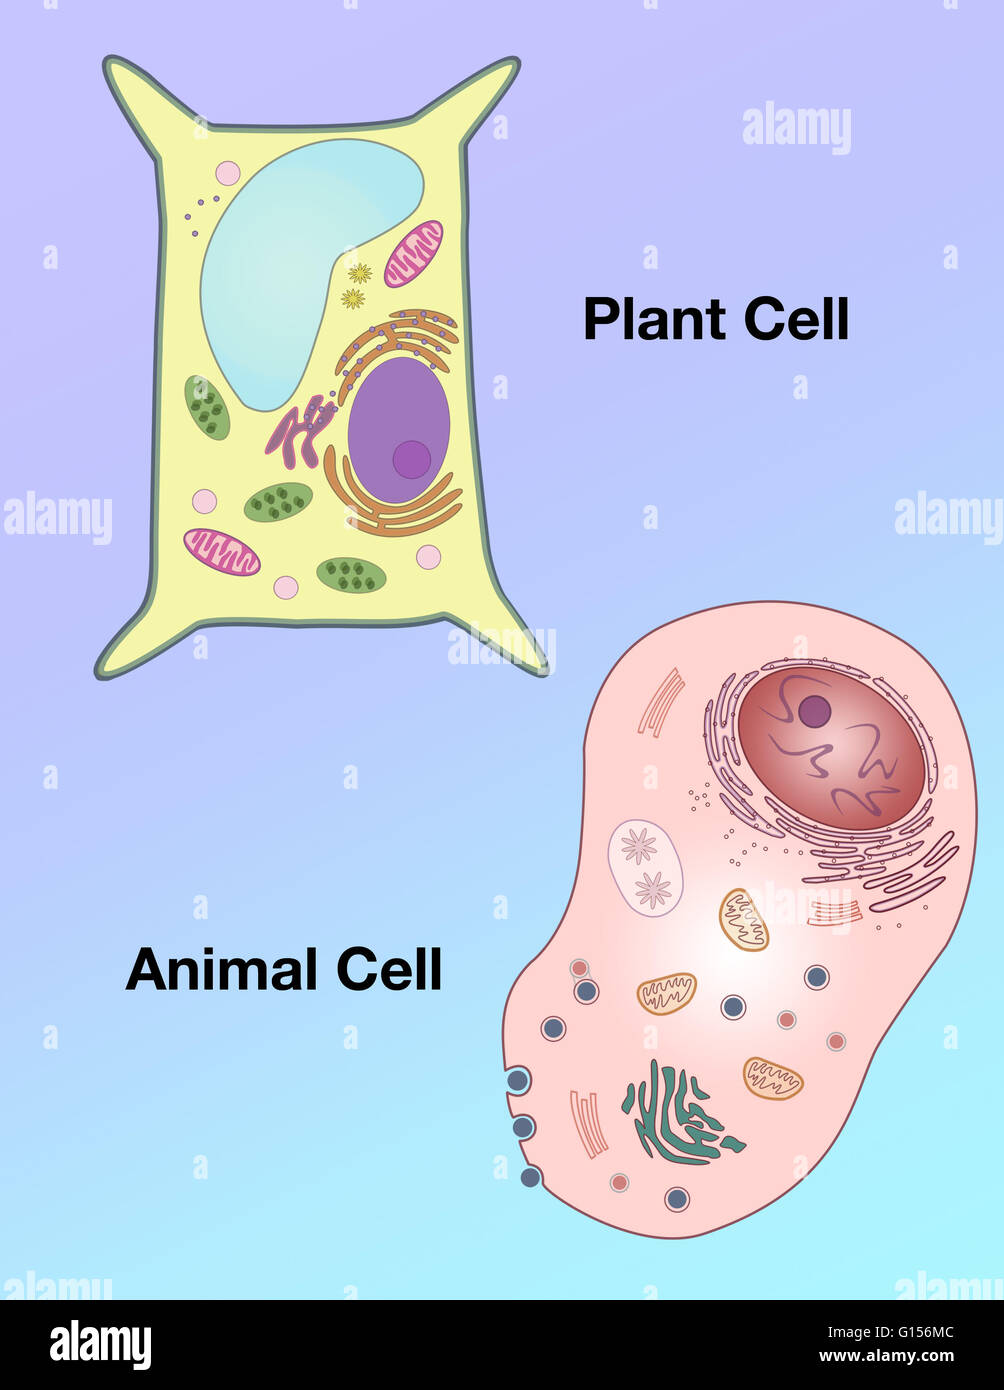 Animal Cell Diagram Stock Photos & Animal Cell Diagram Stock Images ...